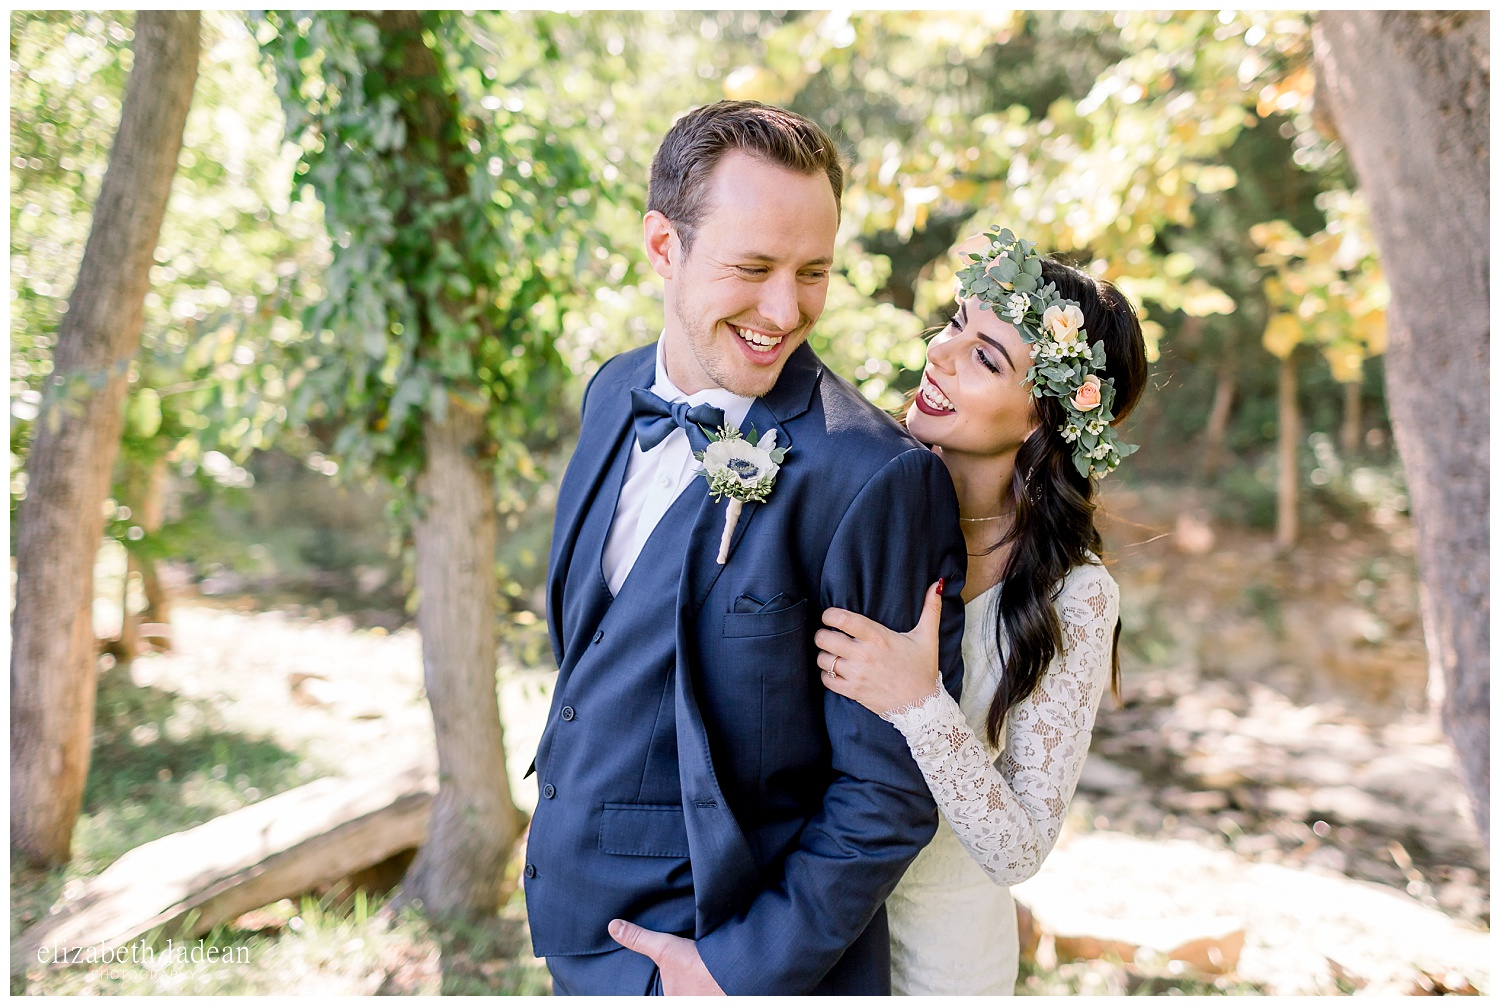 Willow-Creek-Blush-and-Blues-Outdoor-Wedding-Photography-S+Z2018-elizabeth-ladean-photography-photo_0538.jpg